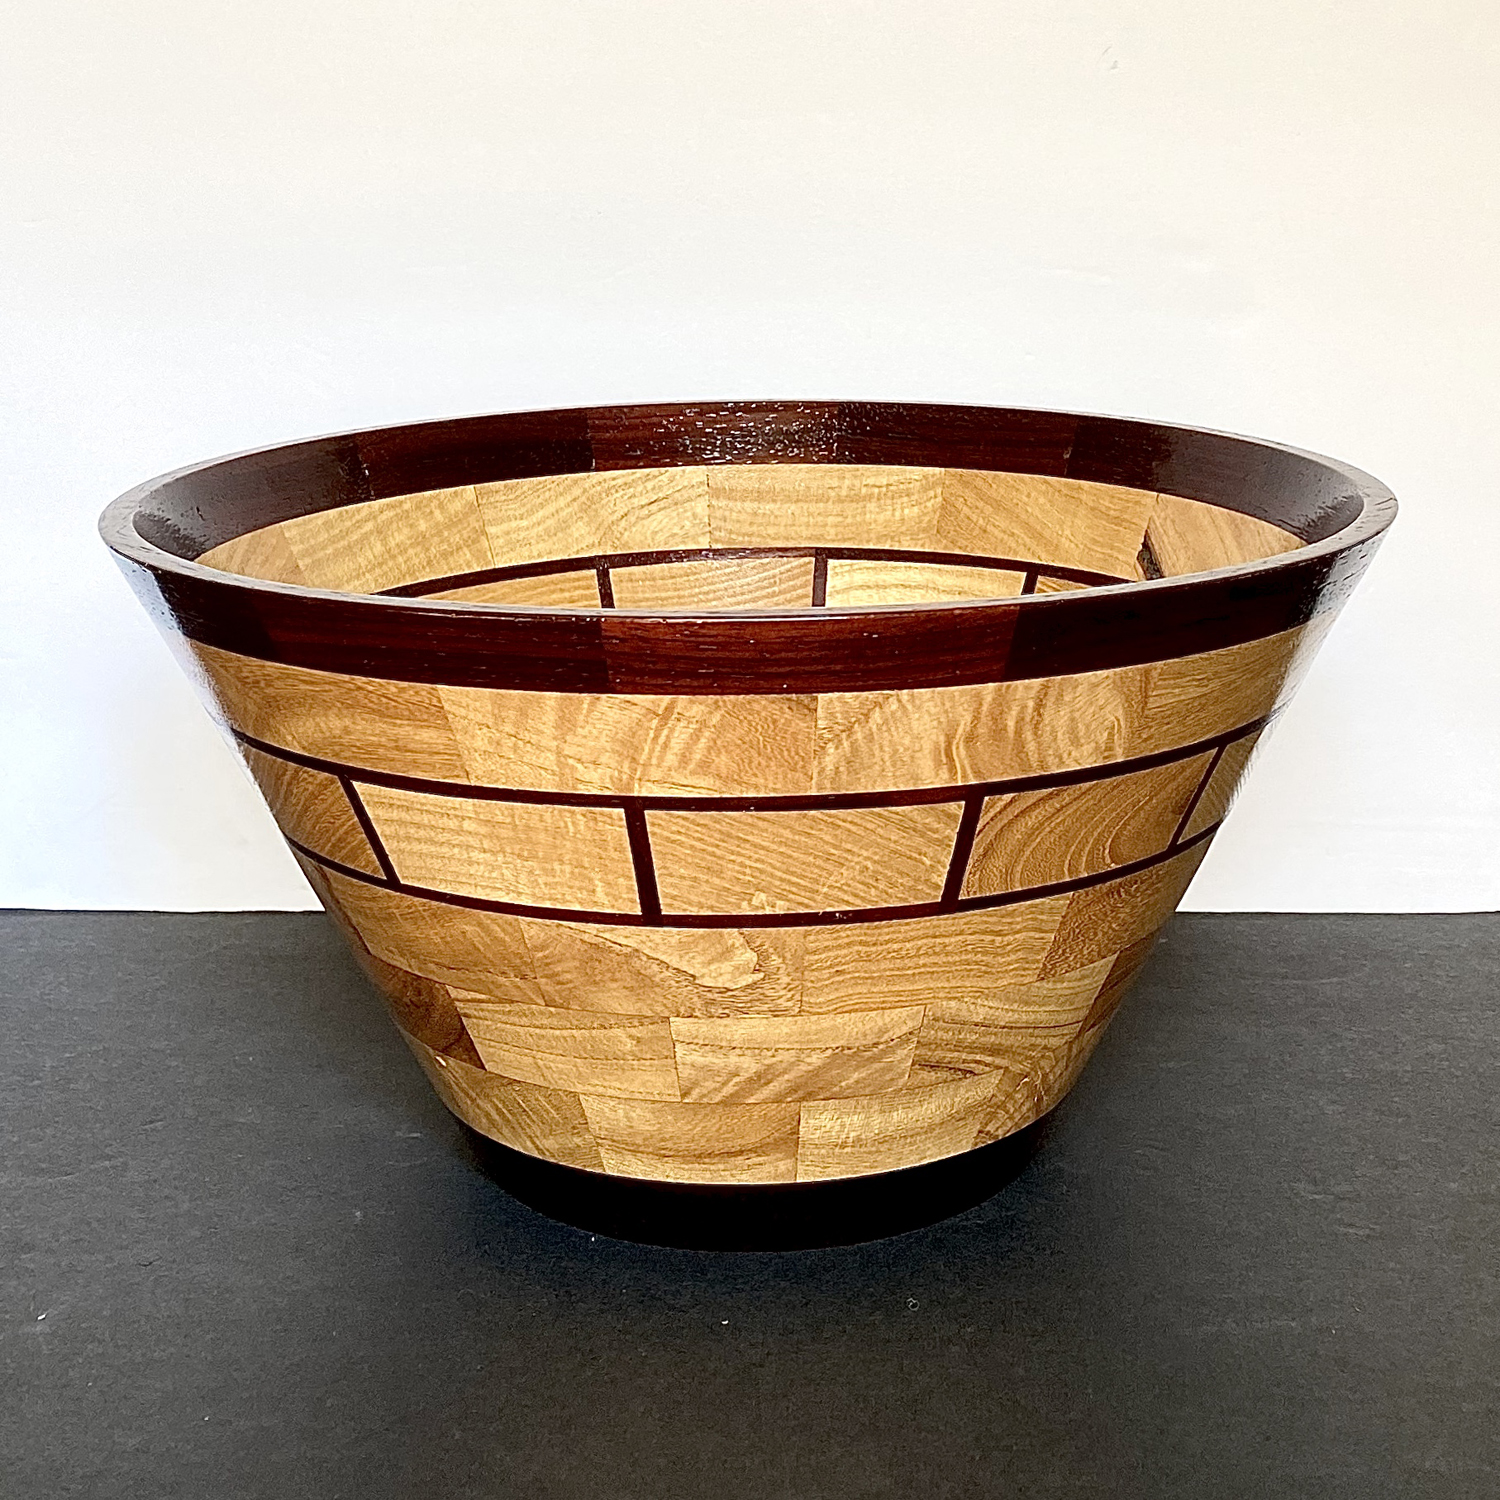 Large Segmented Bowl - John Cargill